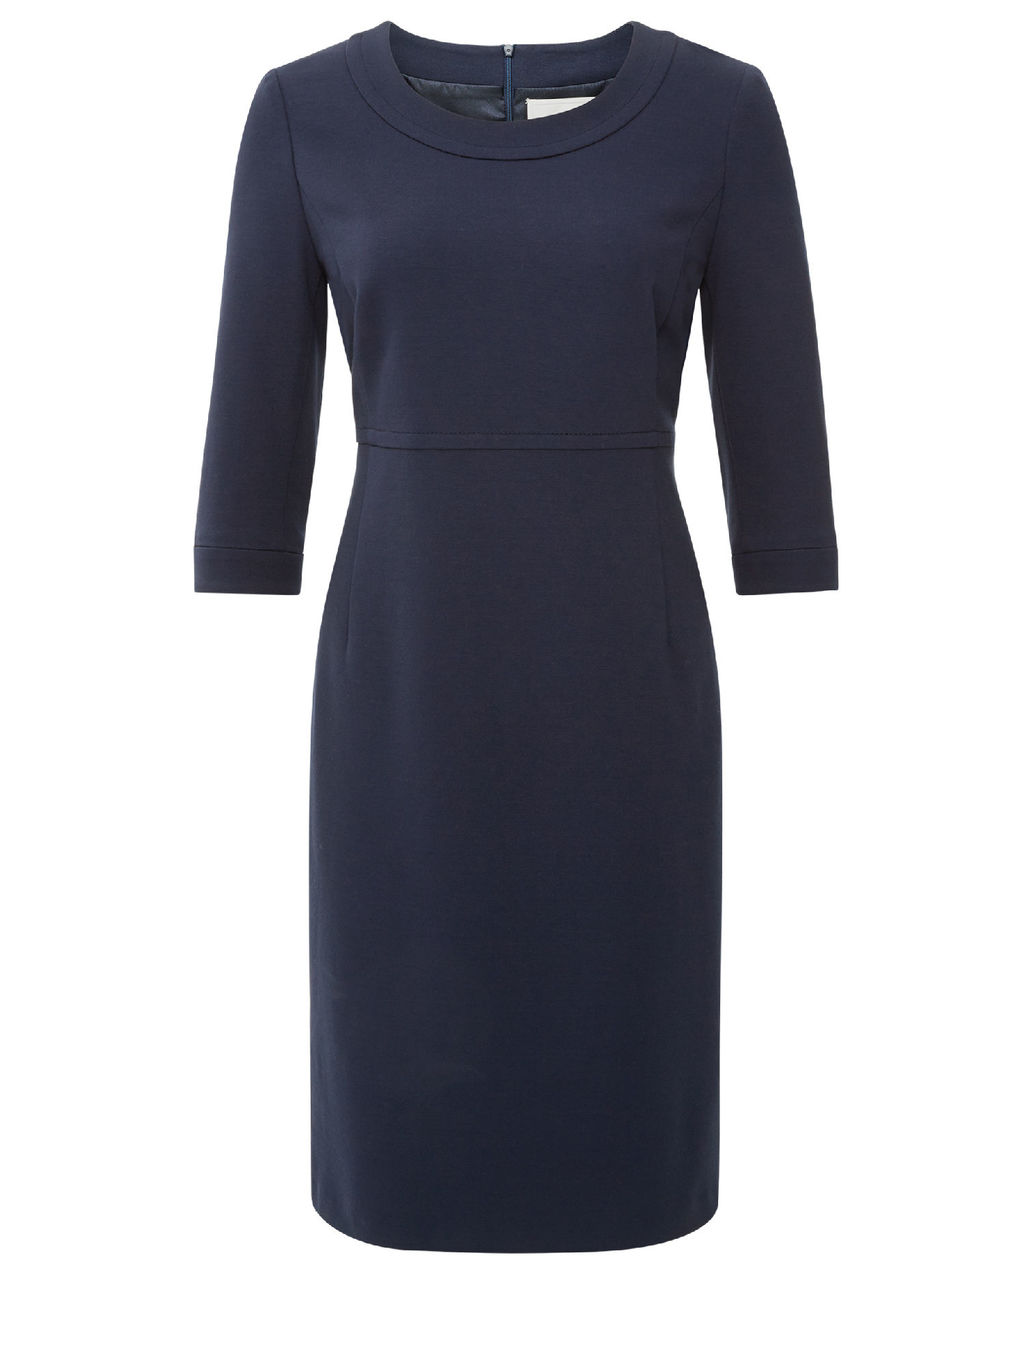 Kensington Navy Dress - style: shift; neckline: round neck; fit: tailored/fitted; pattern: plain; predominant colour: navy; occasions: work, creative work; length: on the knee; fibres: polyester/polyamide - stretch; sleeve length: 3/4 length; sleeve style: standard; pattern type: fabric; texture group: jersey - stretchy/drapey; season: a/w 2015; wardrobe: investment